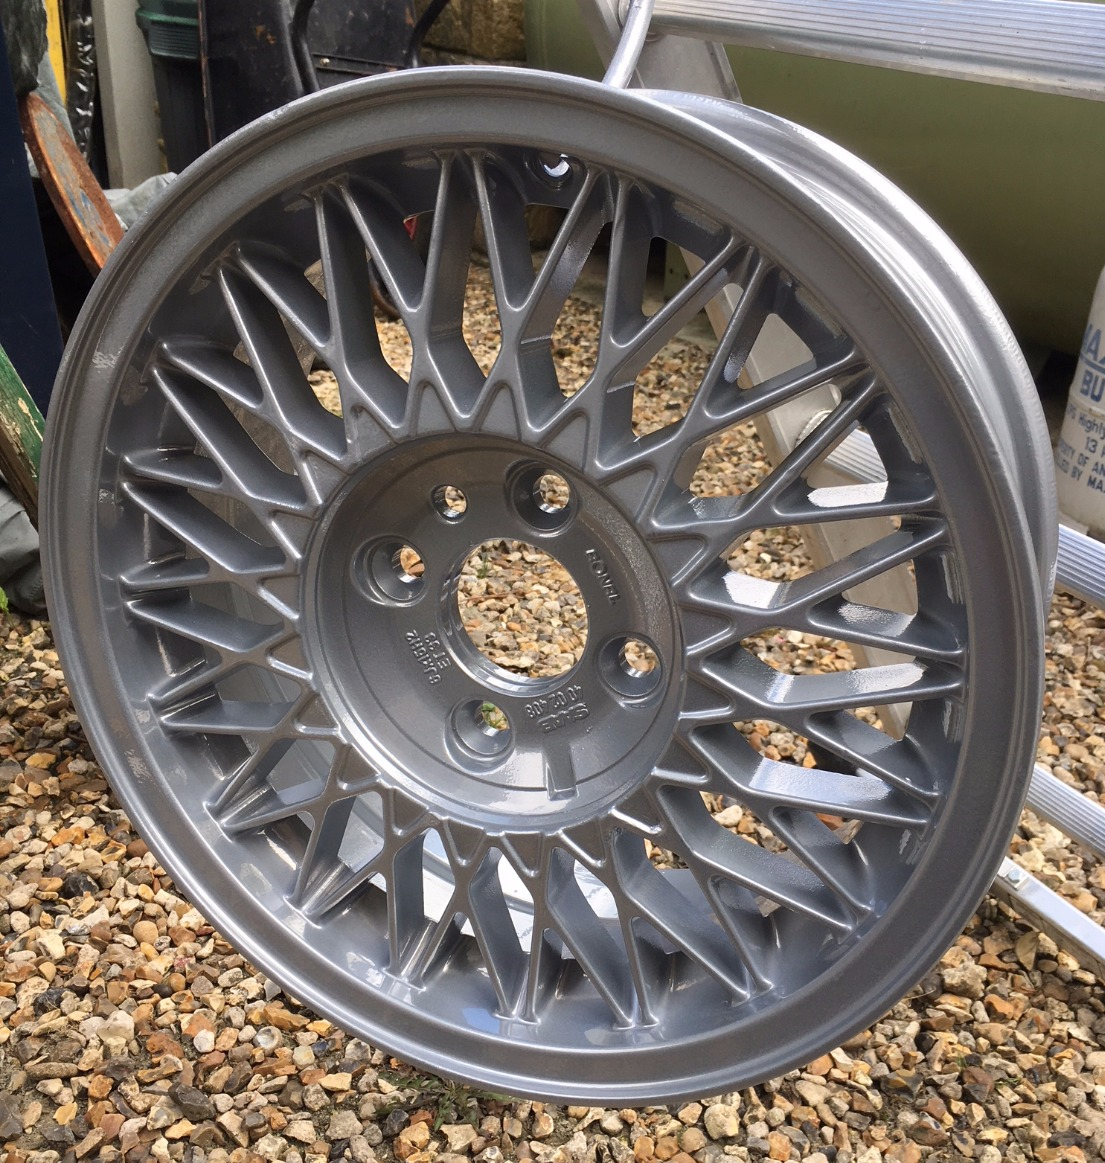 Saab 900 Classic powder coated wheel